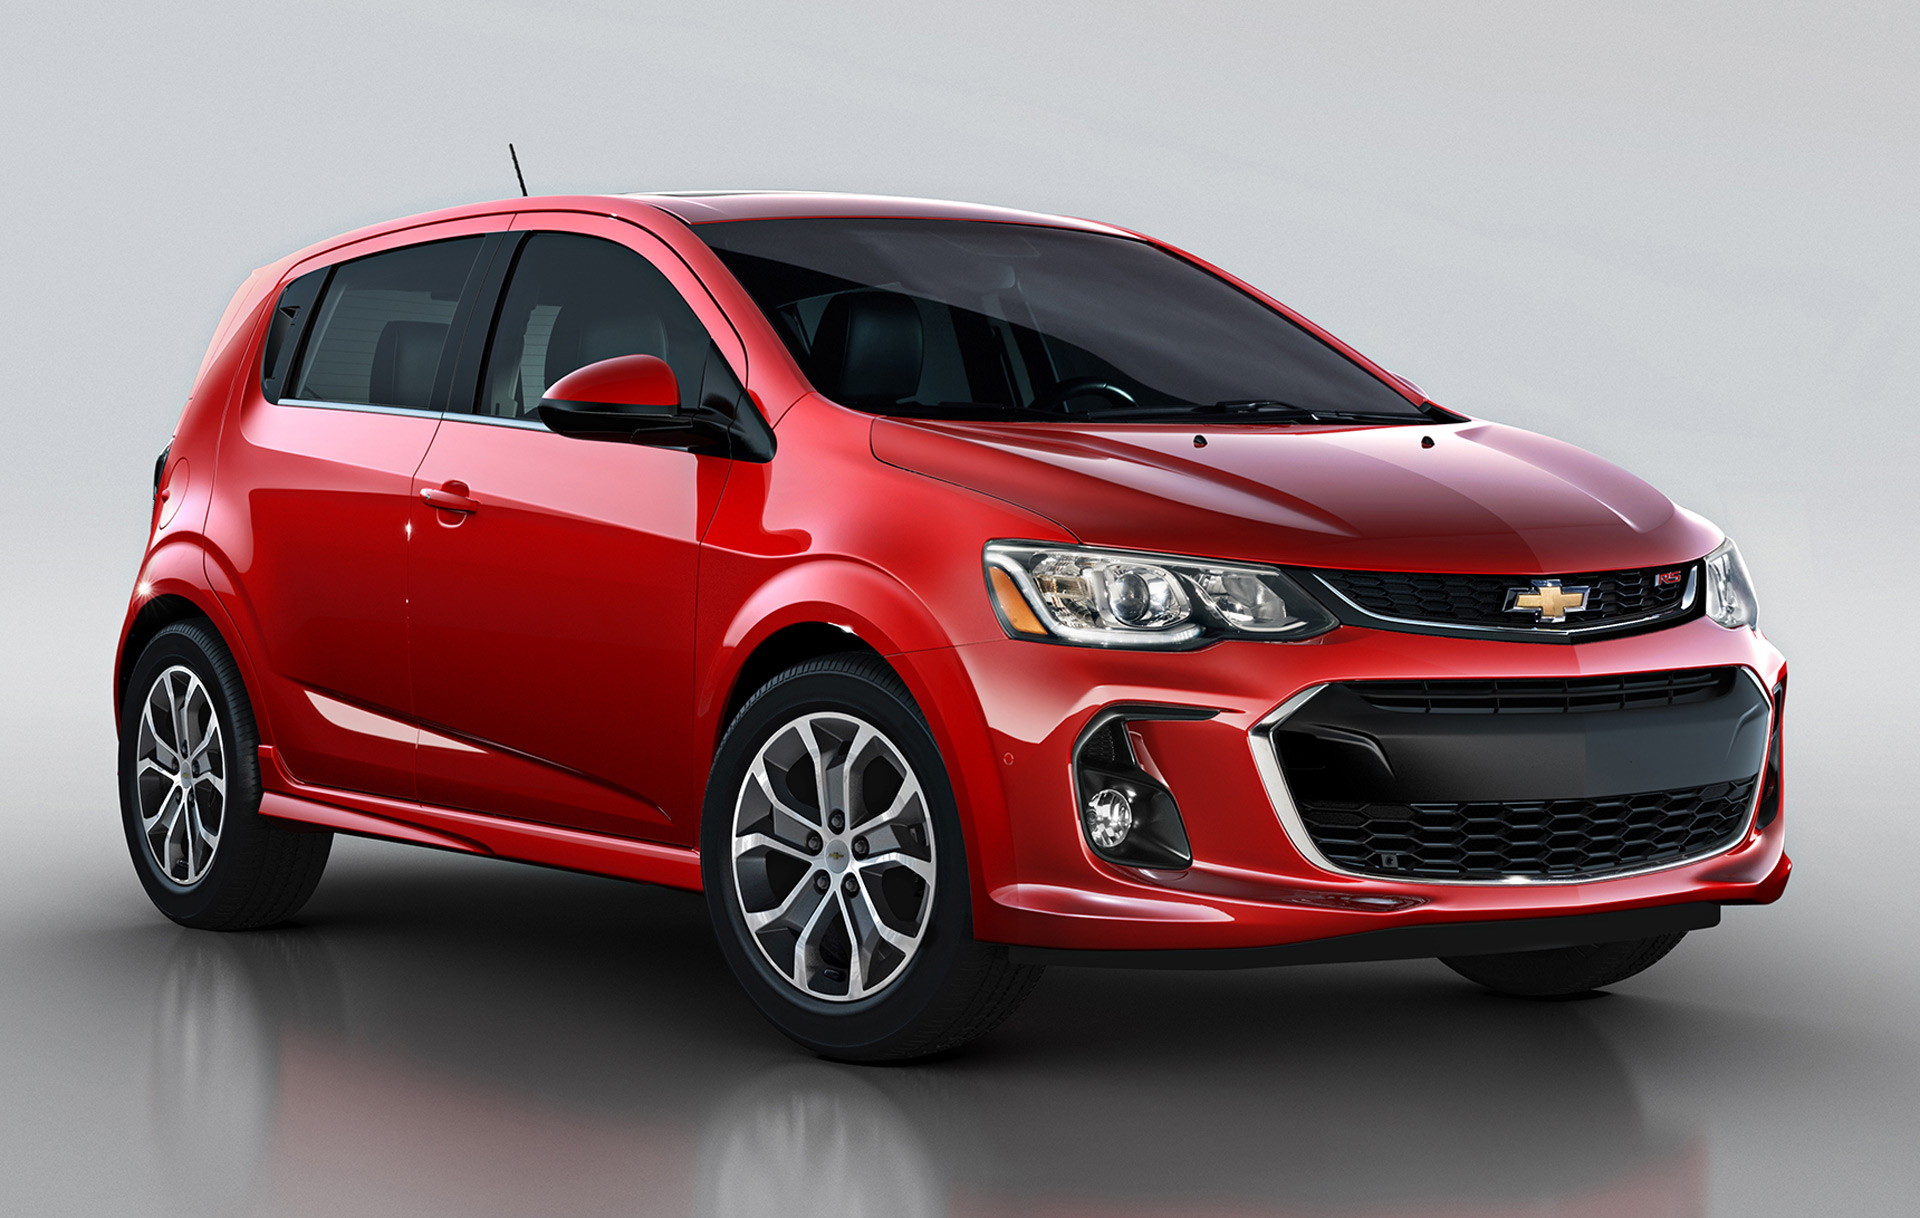 2017 chevrolet sonic updated with carplay new styling. Black Bedroom Furniture Sets. Home Design Ideas